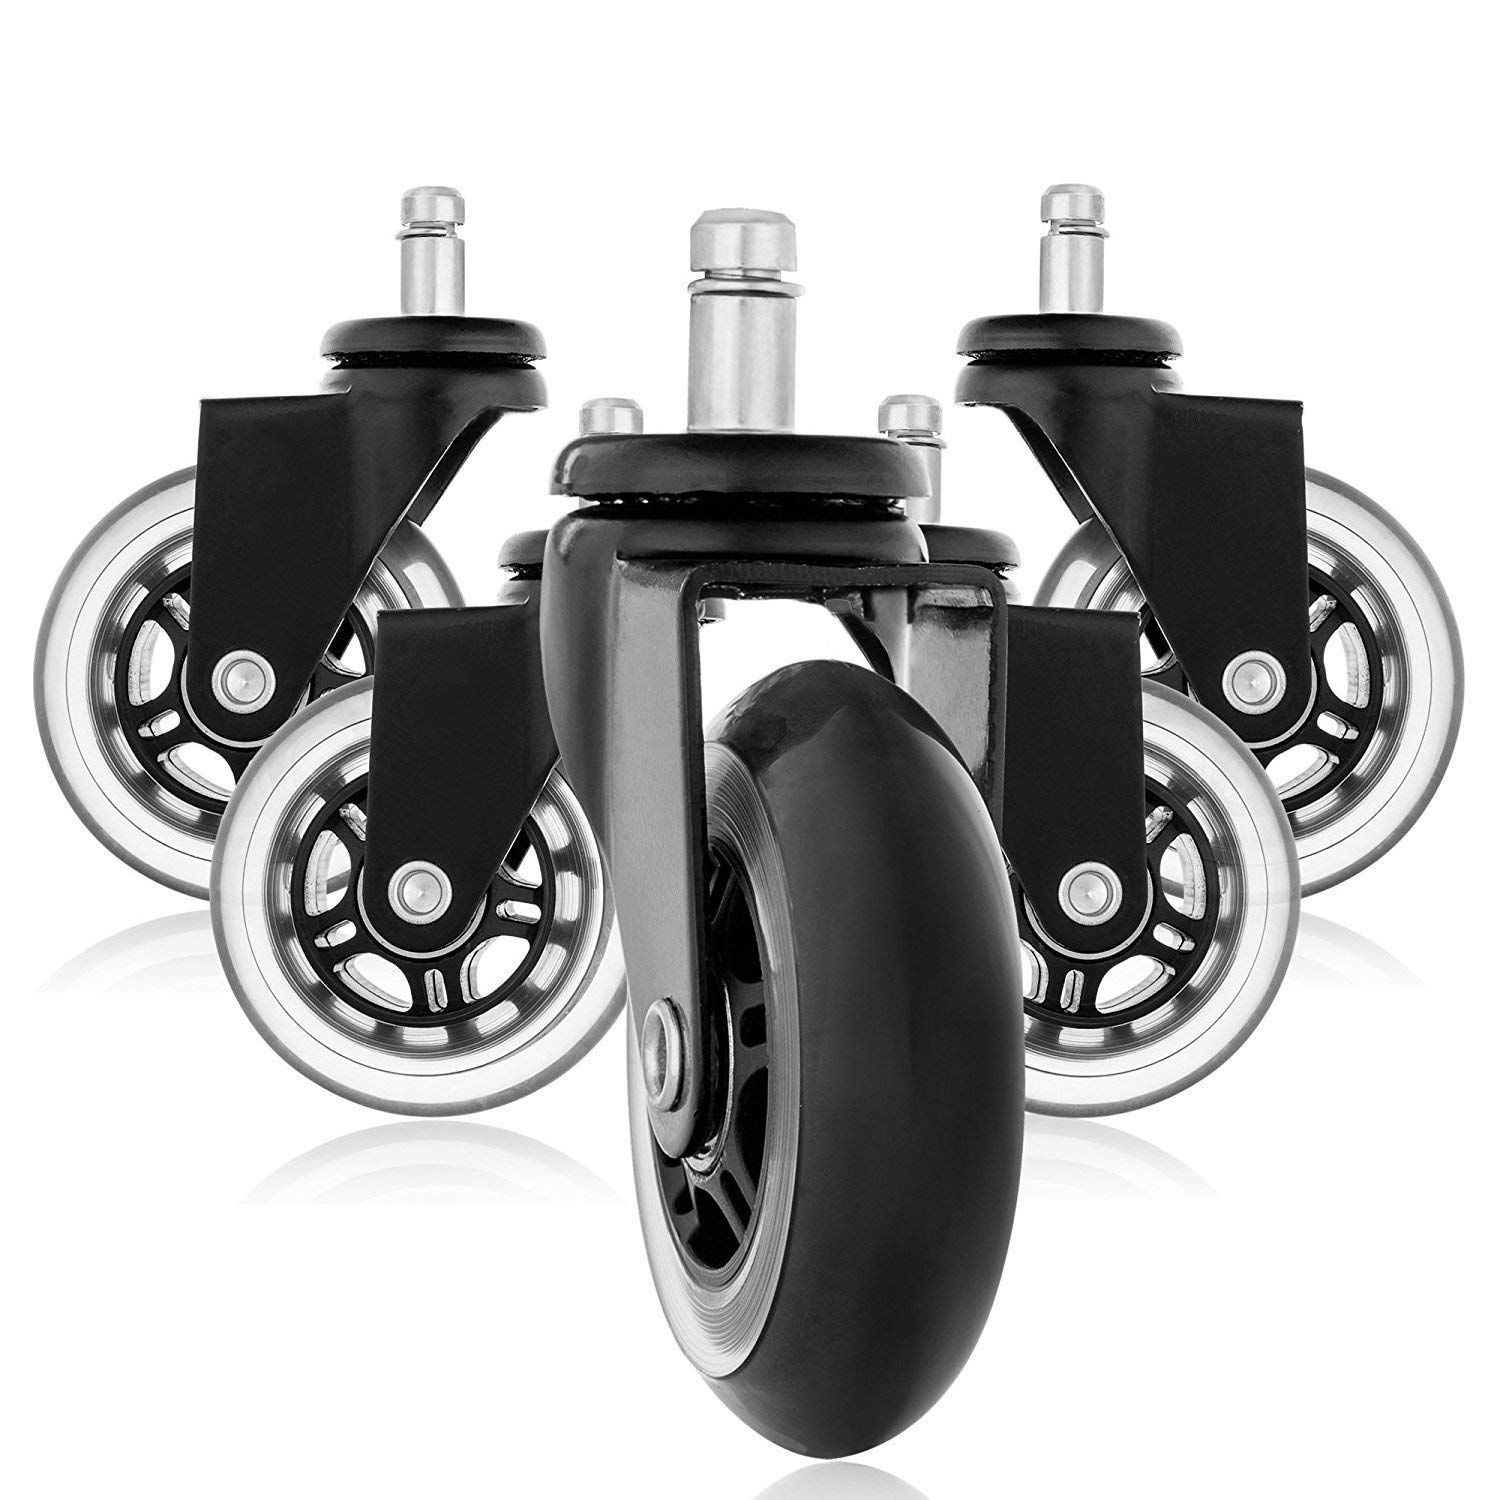 Replacement Wheels Office Chair Caster Wheels For Your